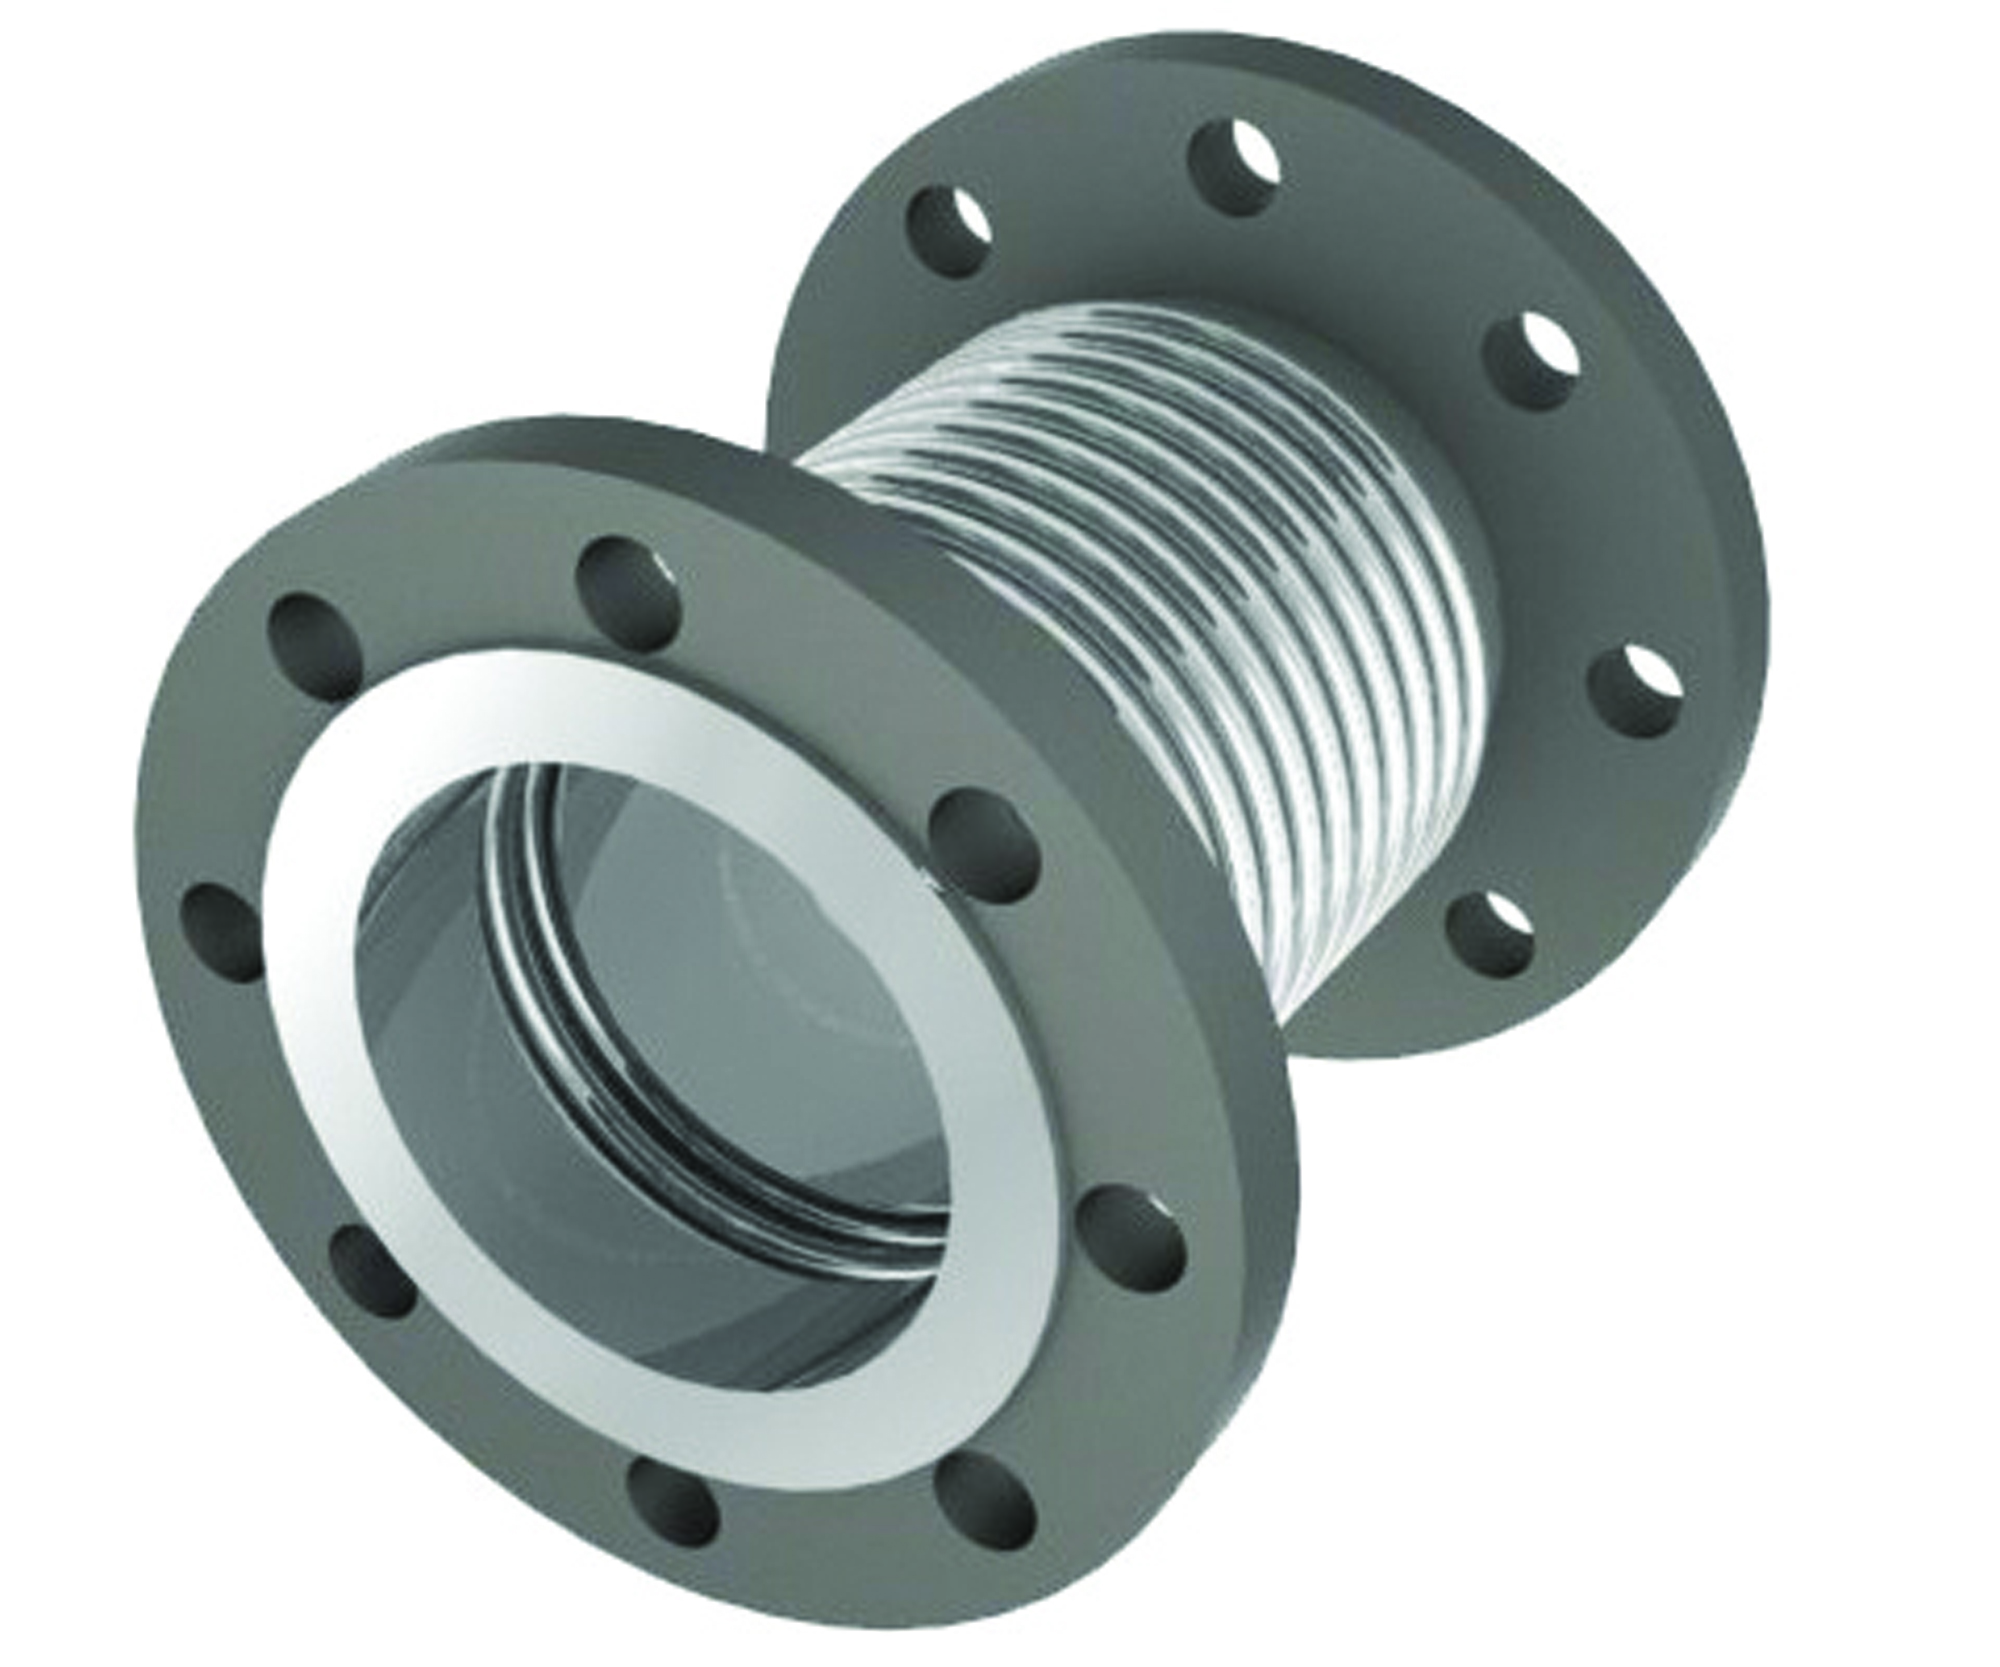 AX2 Flanged Axial Bellow